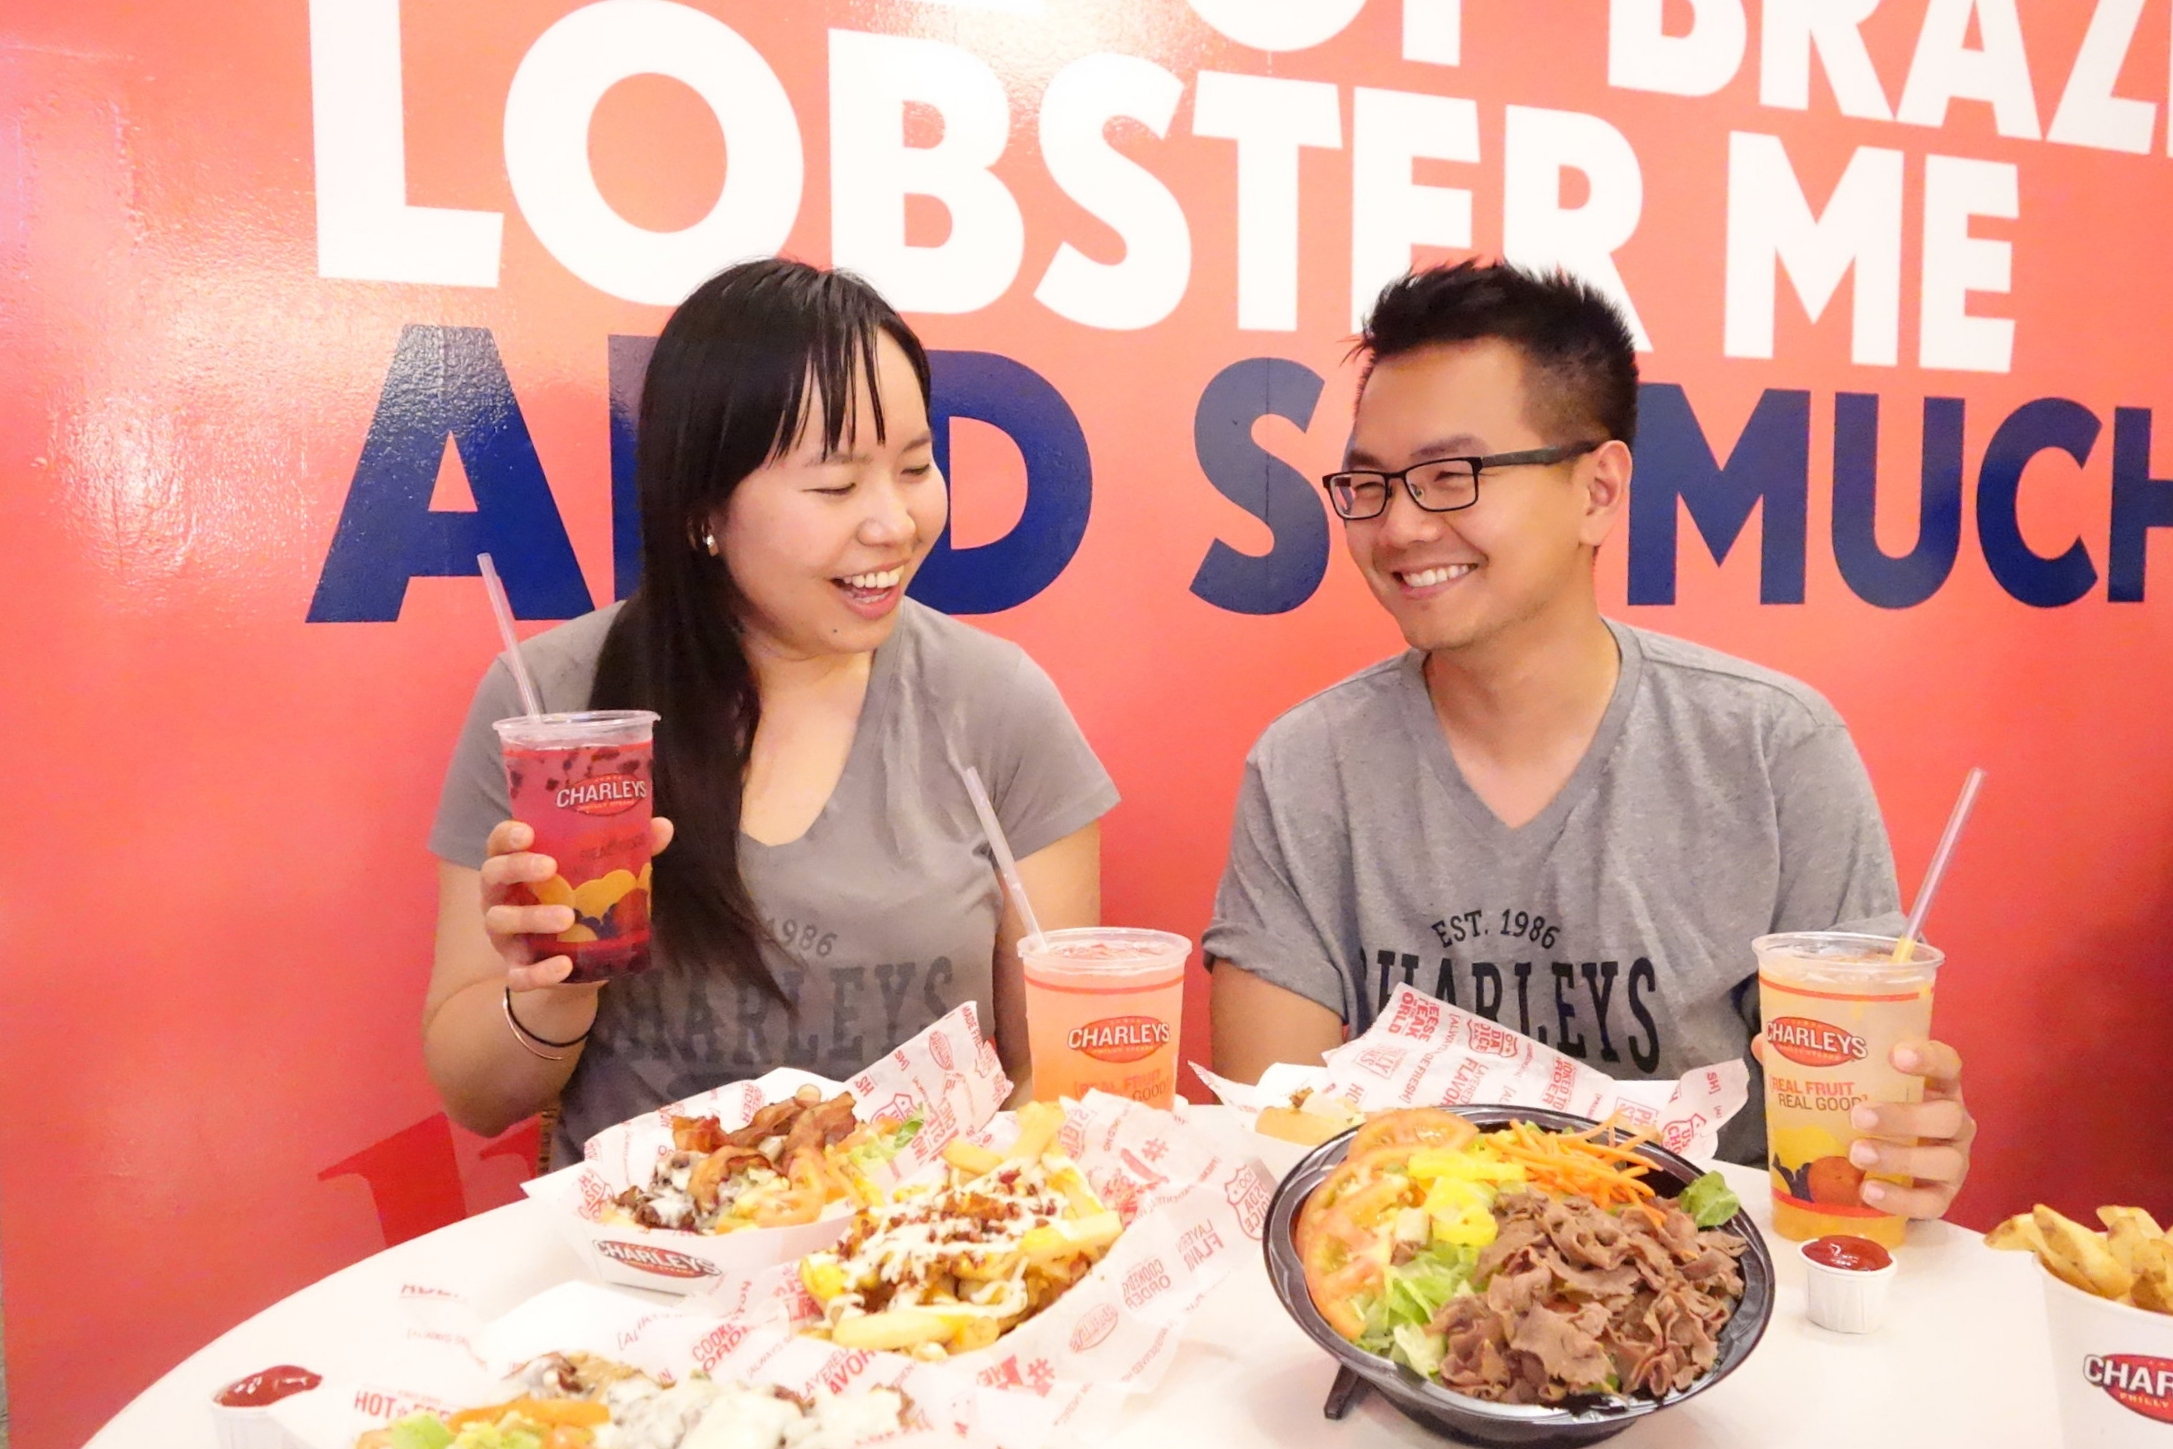 Sandy L. & her good friend Nhan N. share a laugh as they eat at Charley's in Downtown SF.